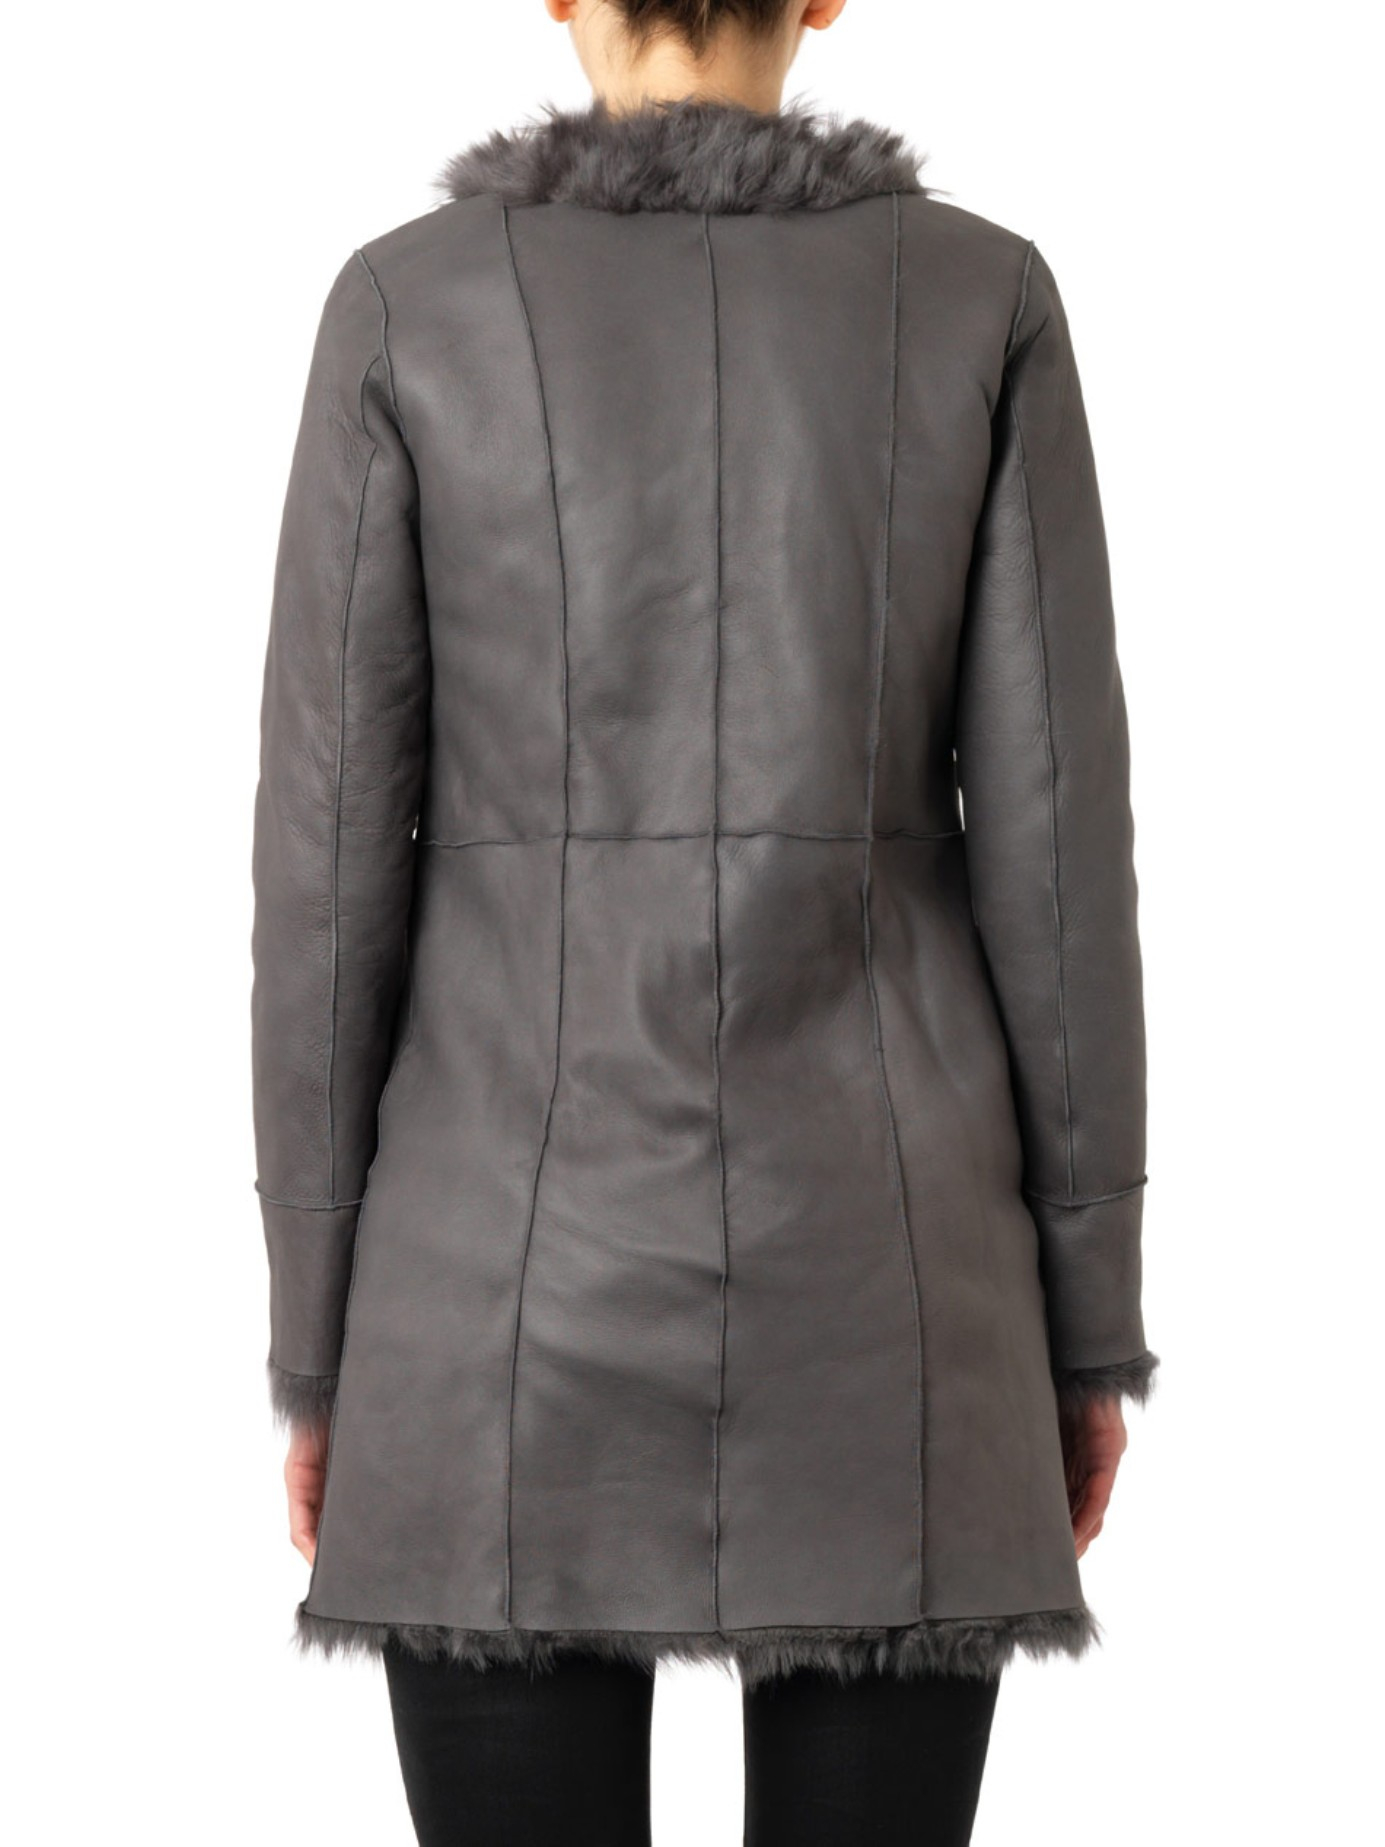 Drome Reversible Leather Shearling Coat in Gray | Lyst